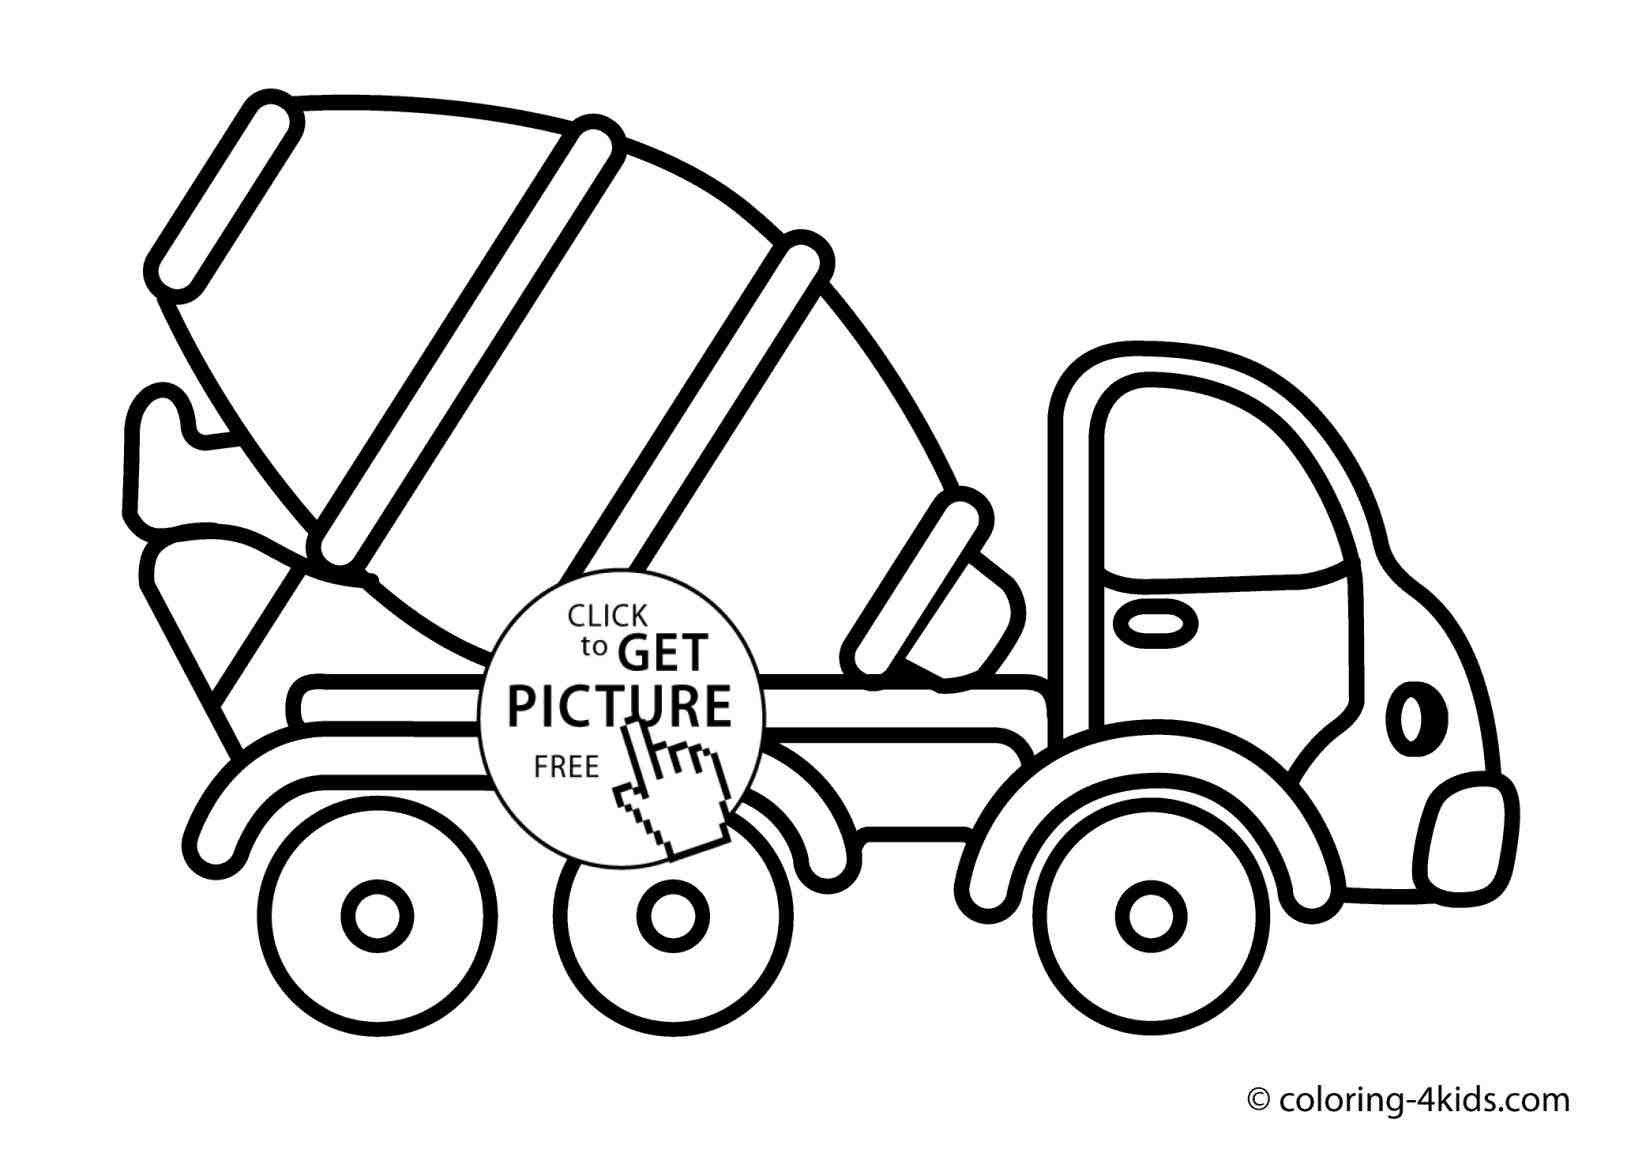 1642x1172 How To Draw A Garbage Truck